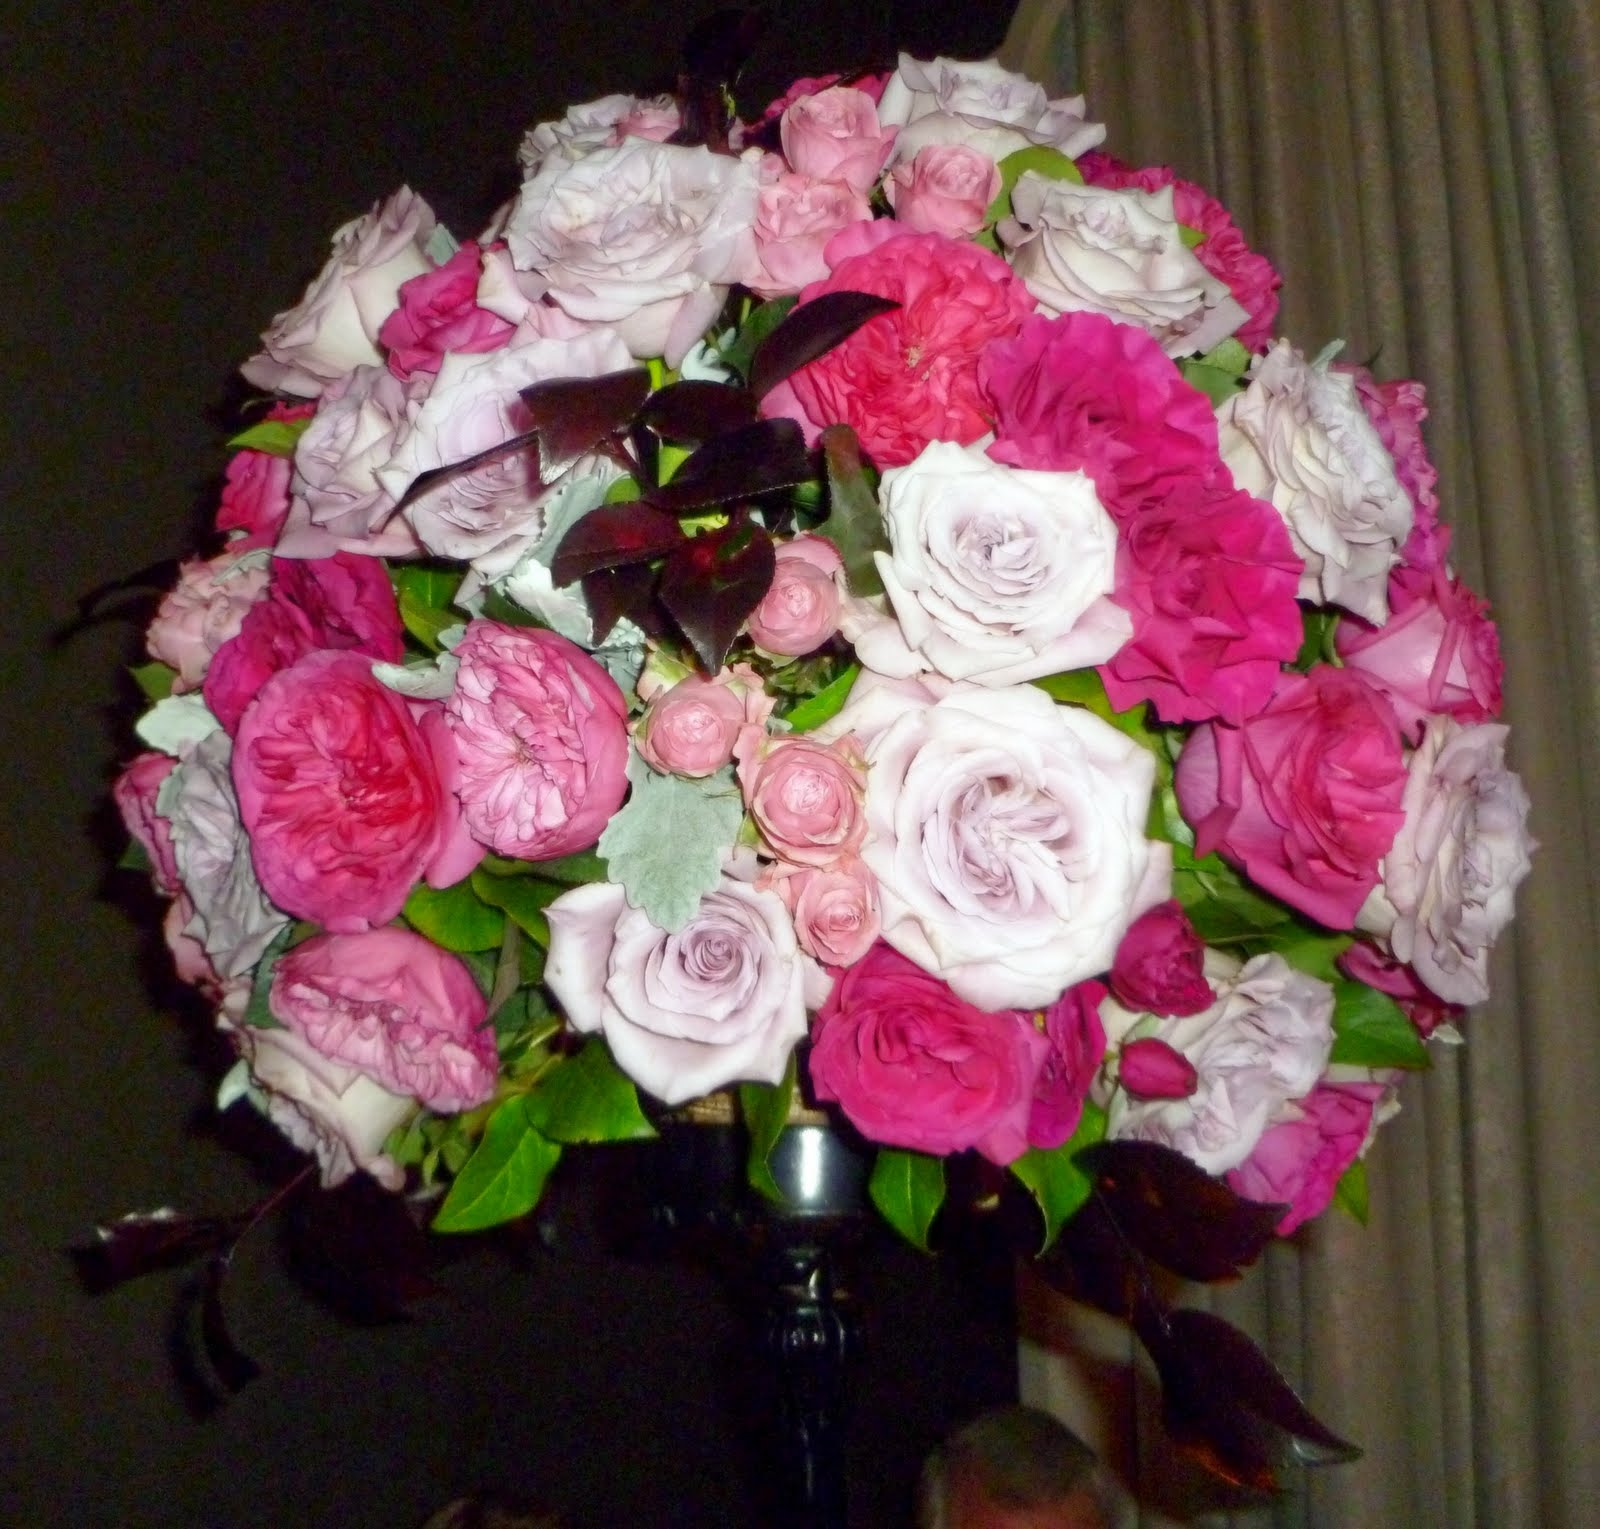 ukraine missouri wedding flowers arrangement